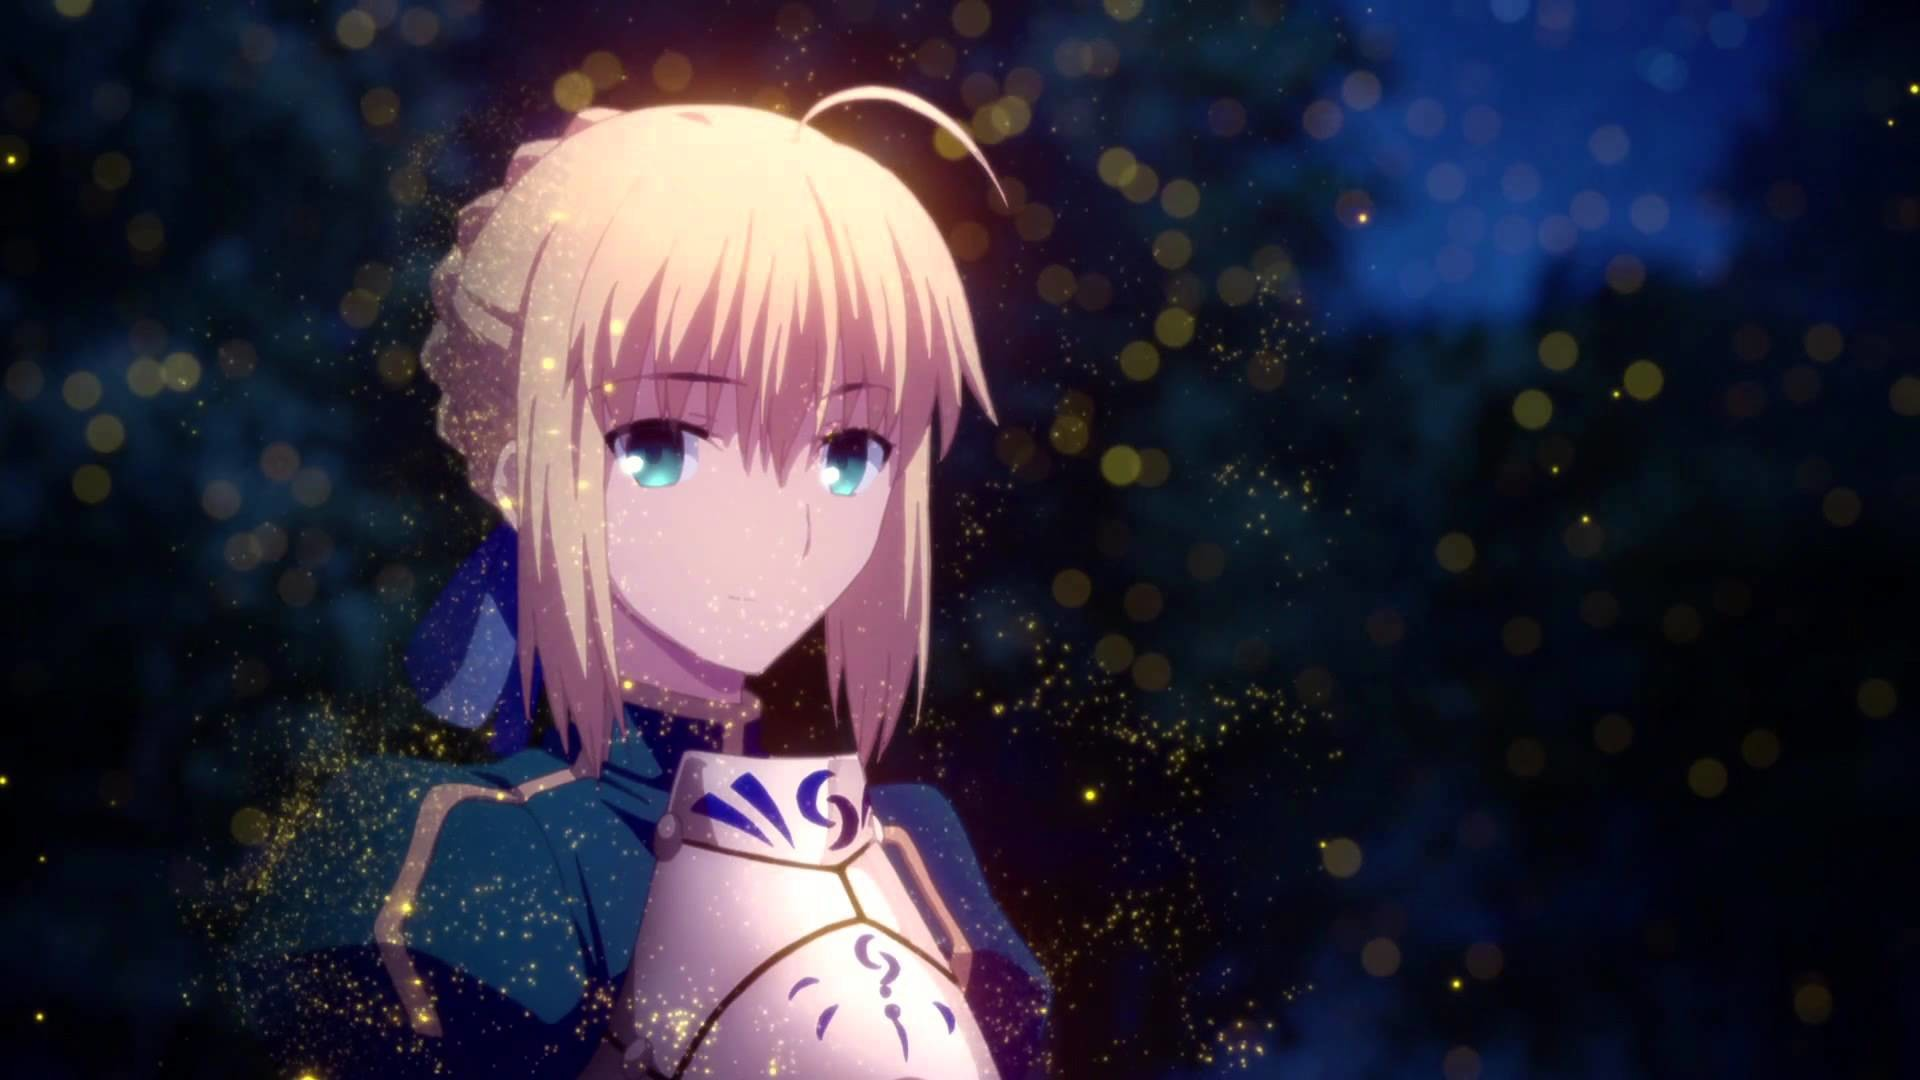 Fate/stay night: [Unlimited Blade Works] OST II – #01 Sorrow UBW Extended –  YouTube